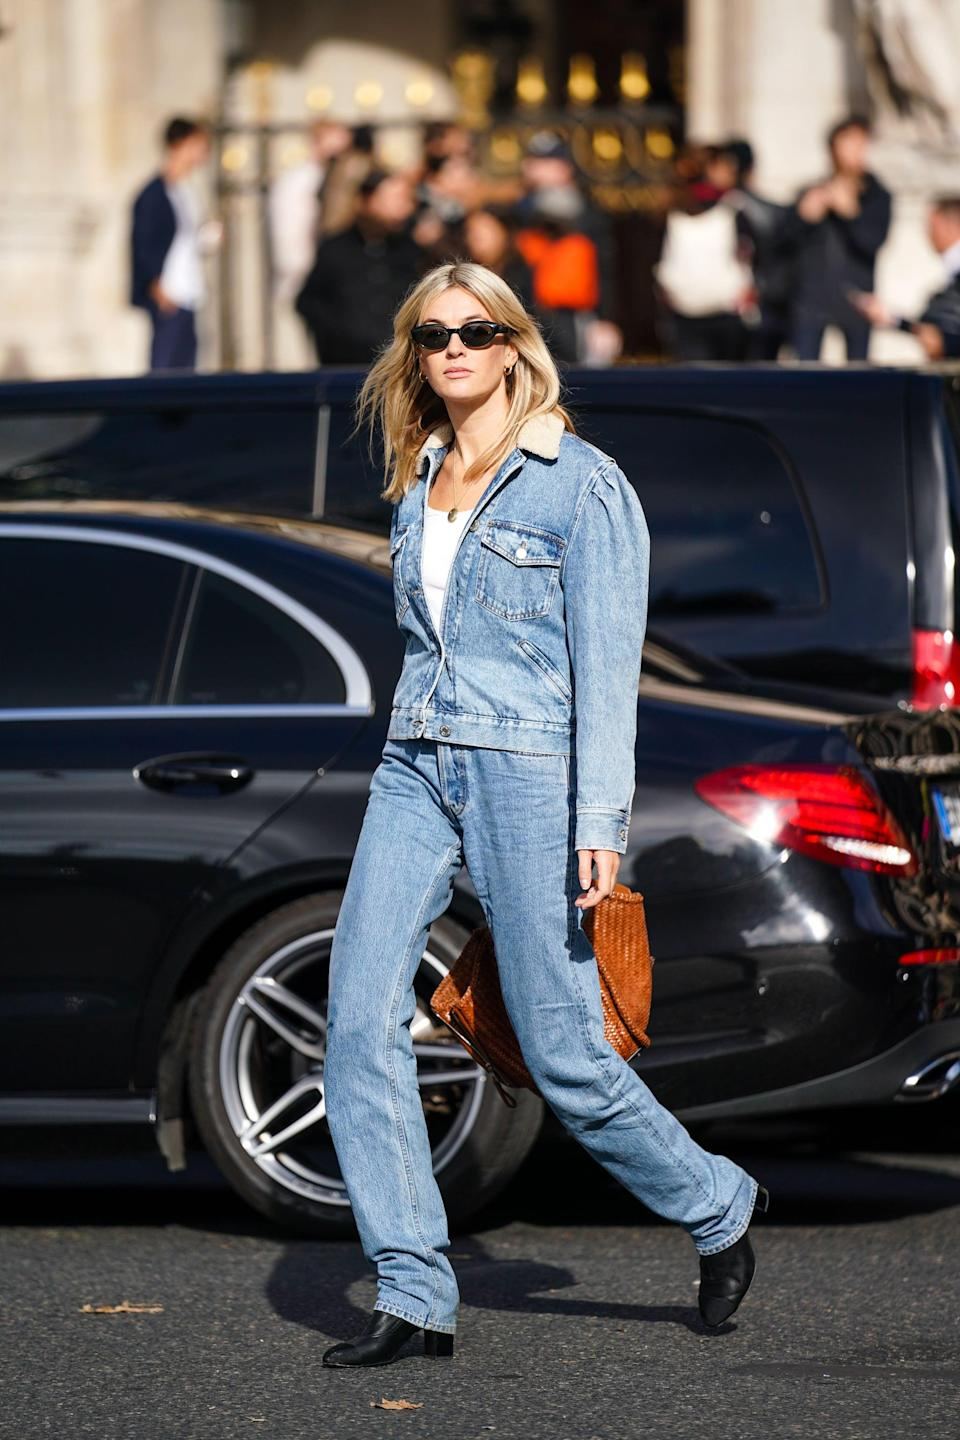 "<p>As much as we love jeans, they can be quite damaging to the environment. Excessive water usage and toxic dyes and chemicals are just a few of denim's negative side affects. Responsible Italian denim company <a href=""https://wwd.com/business-news/business-features/candiani-biodegradable-stretch-denim-1203368221/#:~:text=Italian%20family%2Downed%20sustainable%20denim,with%20Dutch%20denim%2Dmaker%20Denham."" class=""link rapid-noclick-resp"" rel=""nofollow noopener"" target=""_blank"" data-ylk=""slk:Candiani developed biodegradable denim in 2019"">Candiani developed biodegradable denim in 2019</a>. Made completely of plant-based materials, the denim gives back to the environment by breaking down post-use and releasing nutrients into the soul to help with the growth of plants and trees. Biodegradable denim is great because it shrinks your waste footprint. Oh, and it looks good too.</p>"